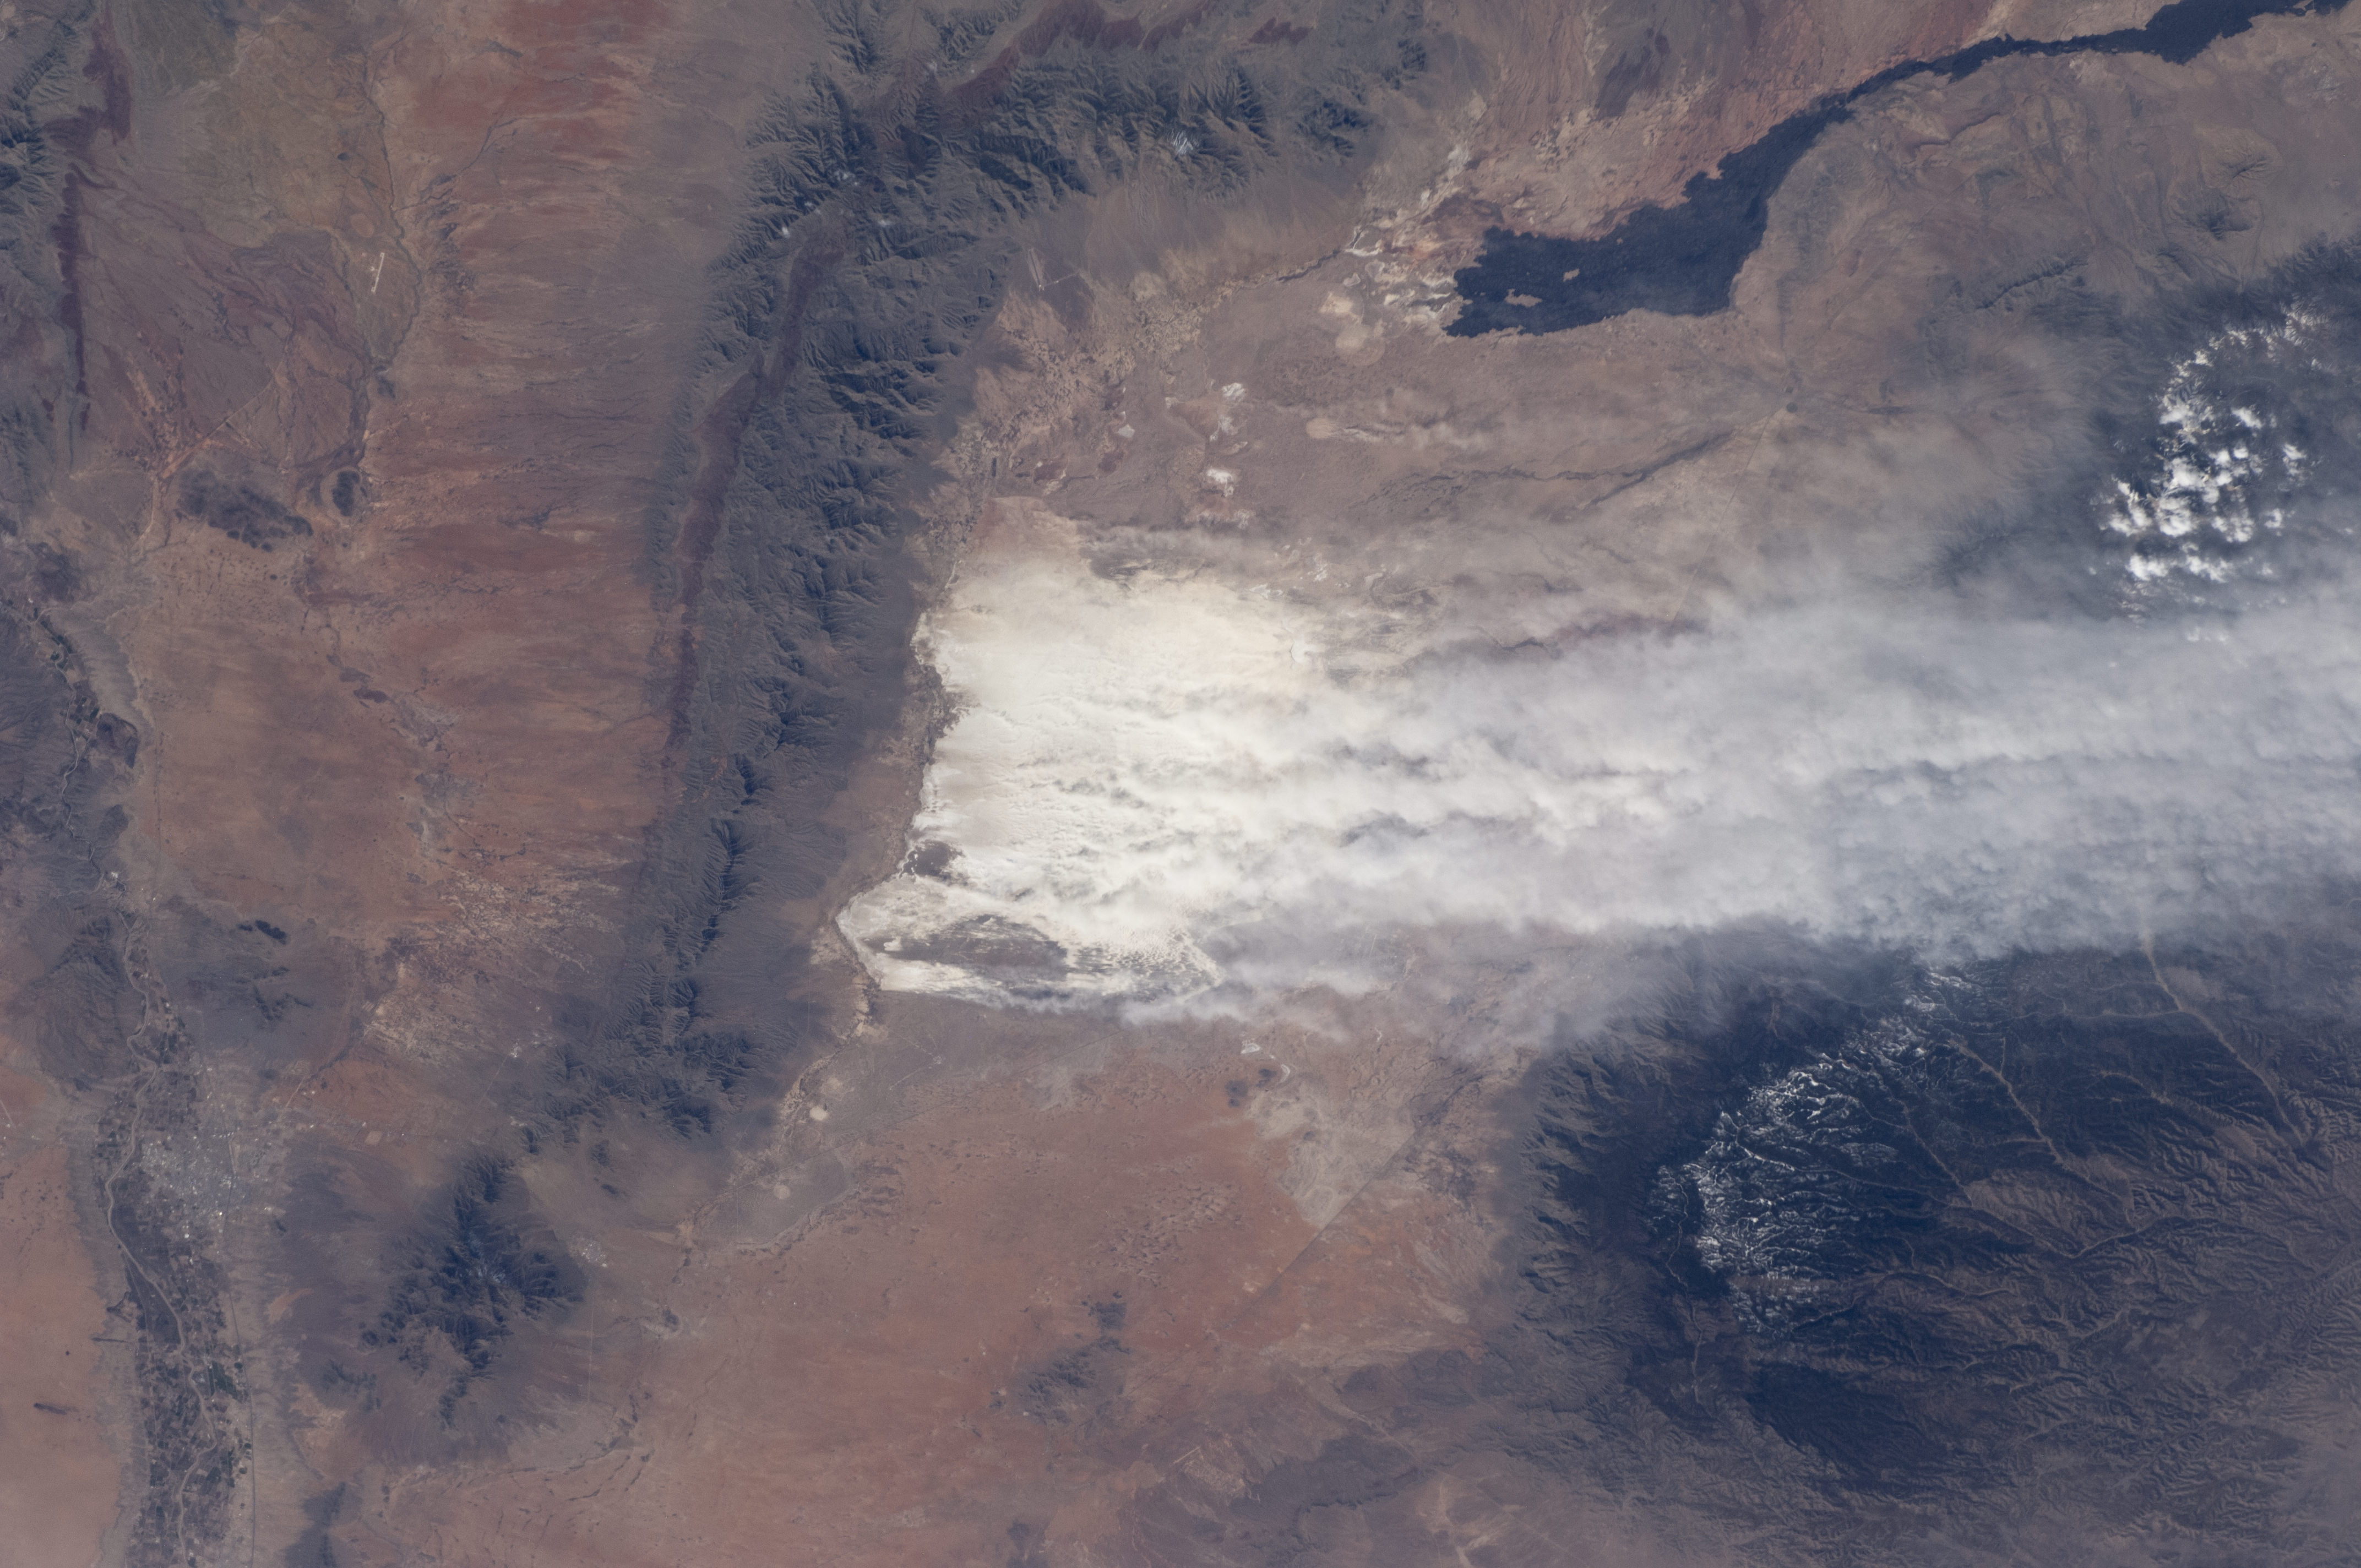 Driven by southwesterly winter winds, dust from the White Sands dune field in New Mexico rises thousands of feet from the valley floor and drifts over the snowy peaks of the Sacramento Mountains. Credit: NASA